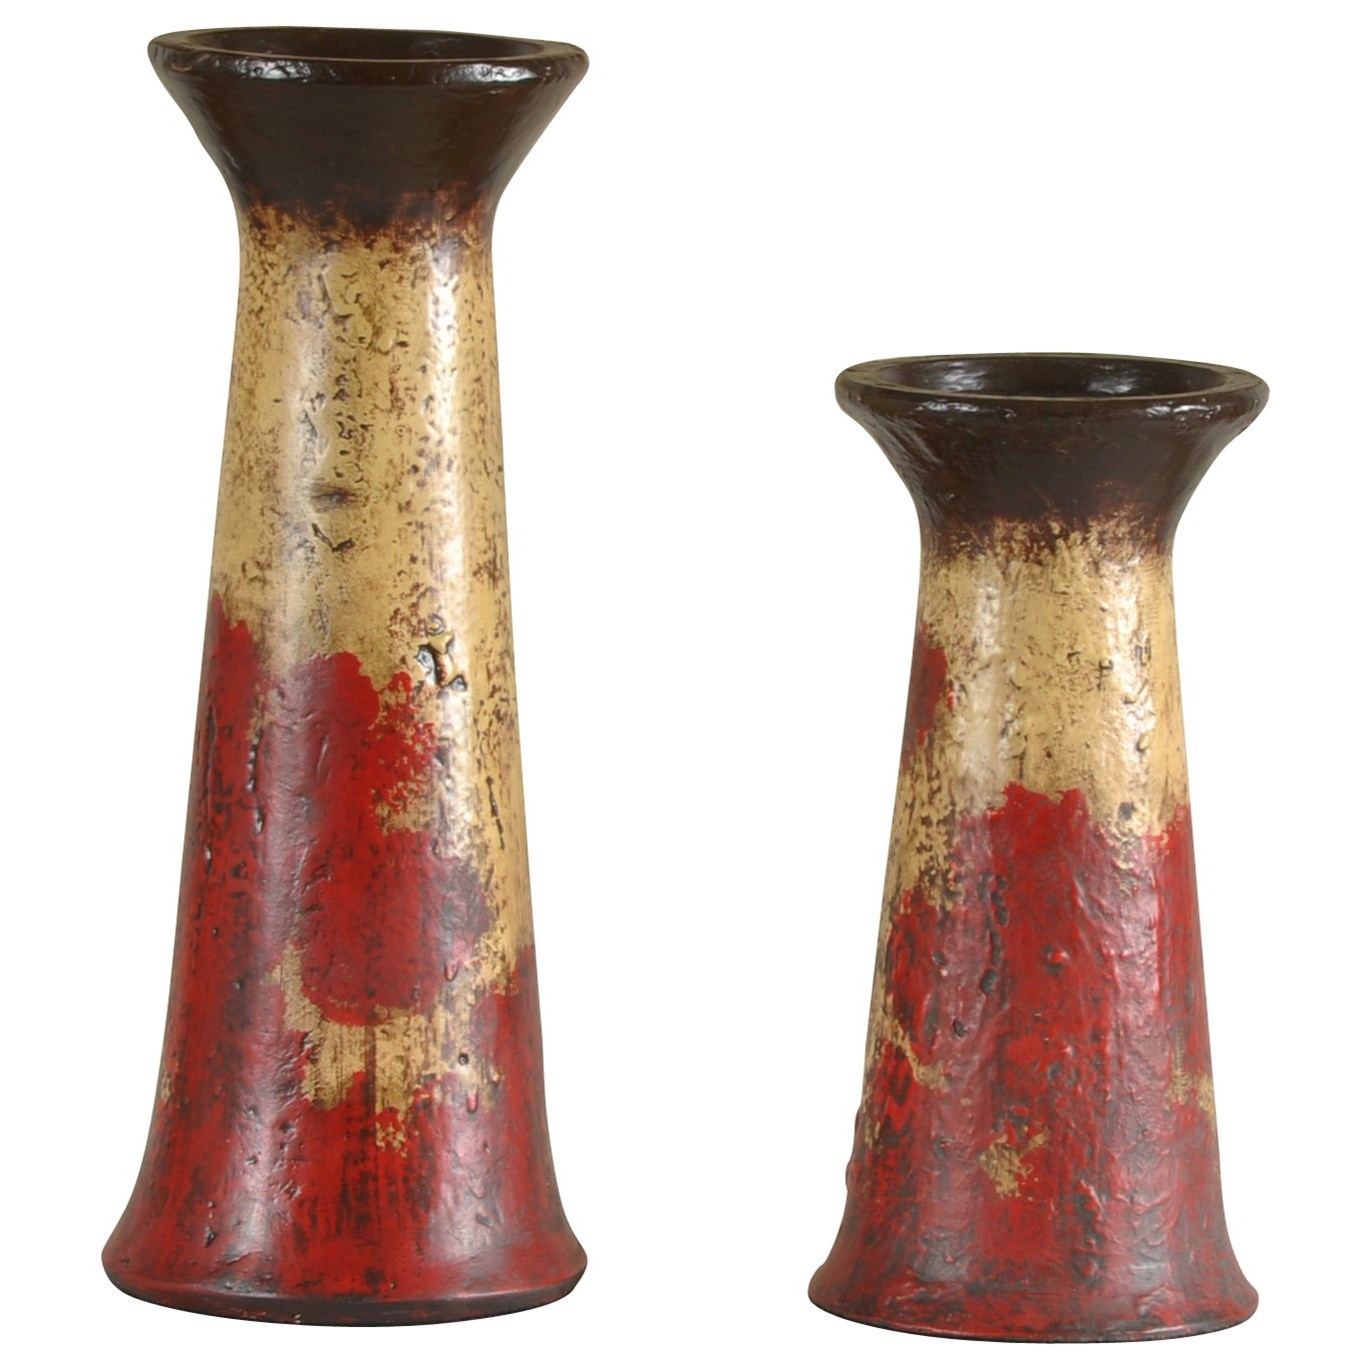 2 Piece Set of Candle Holders